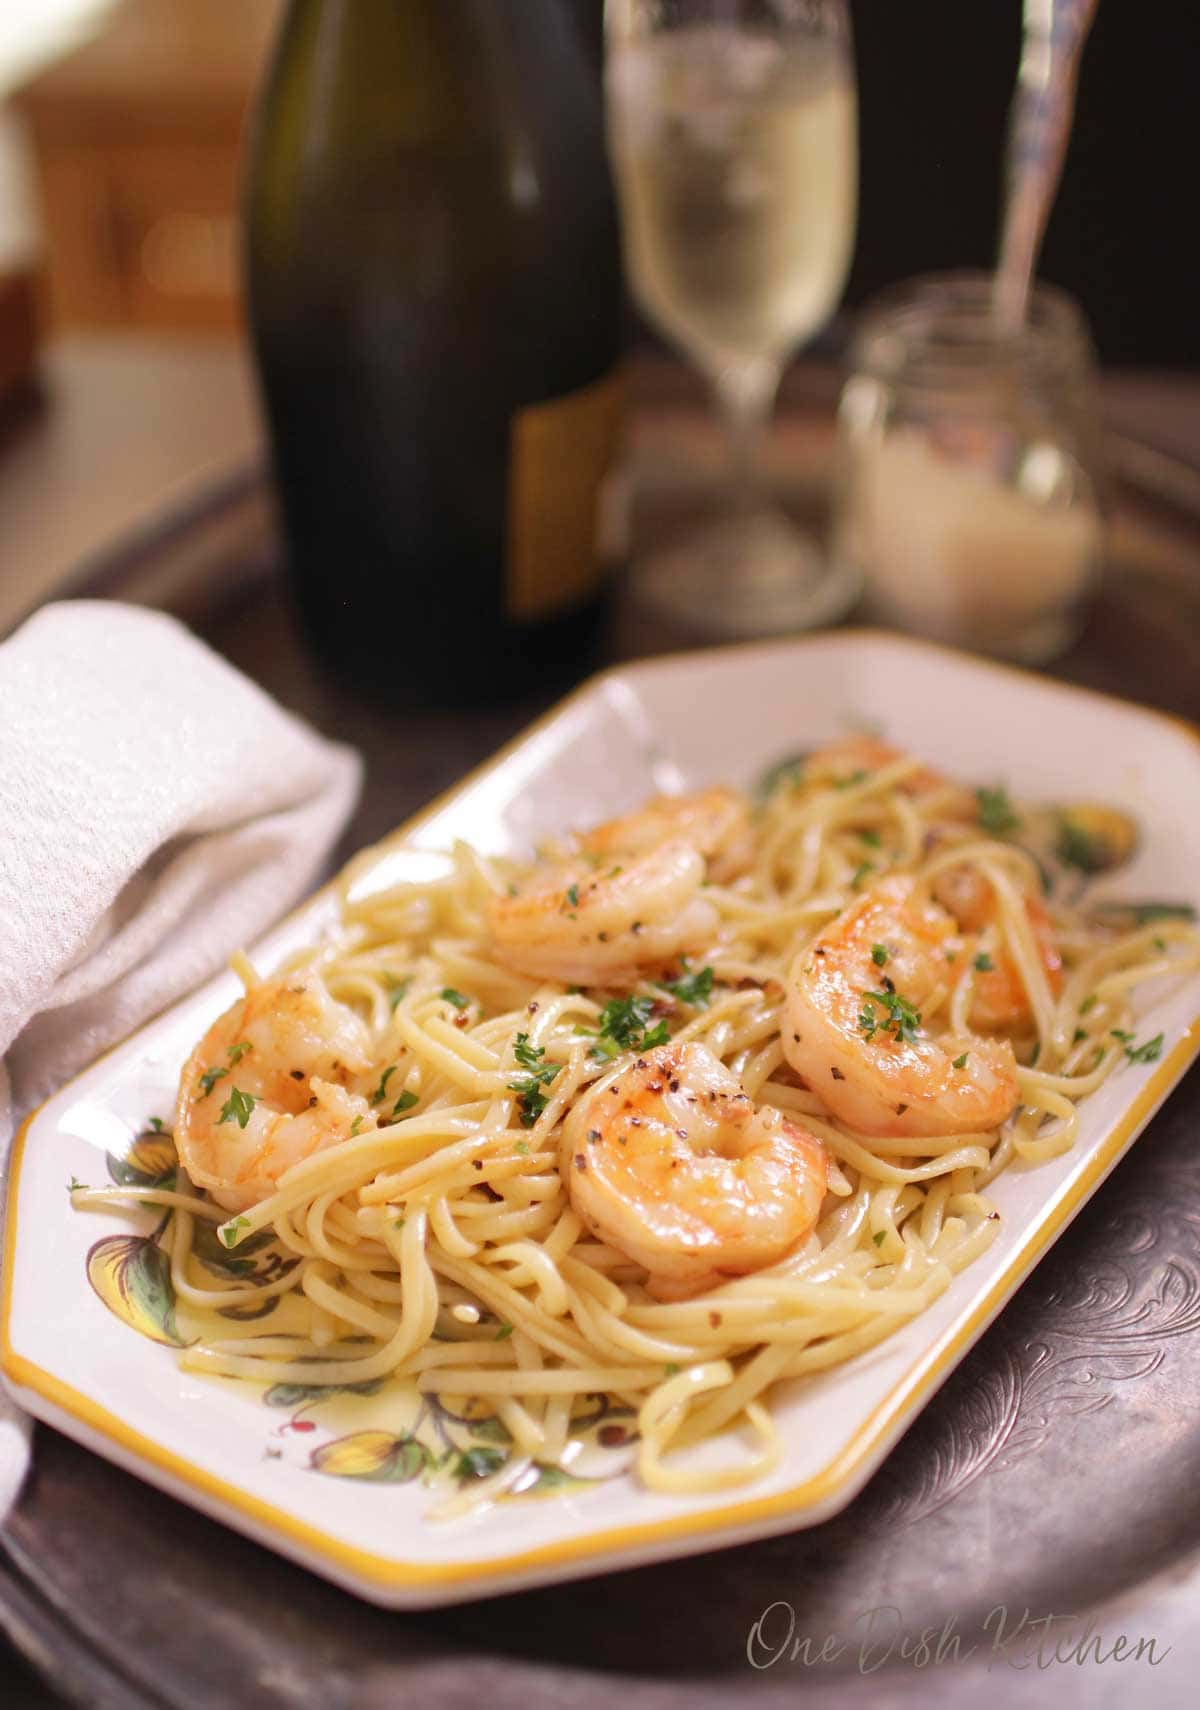 A plate of spaghetti with shrimp on a tray next to a jar of parmesan cheese and a glass of champagne.